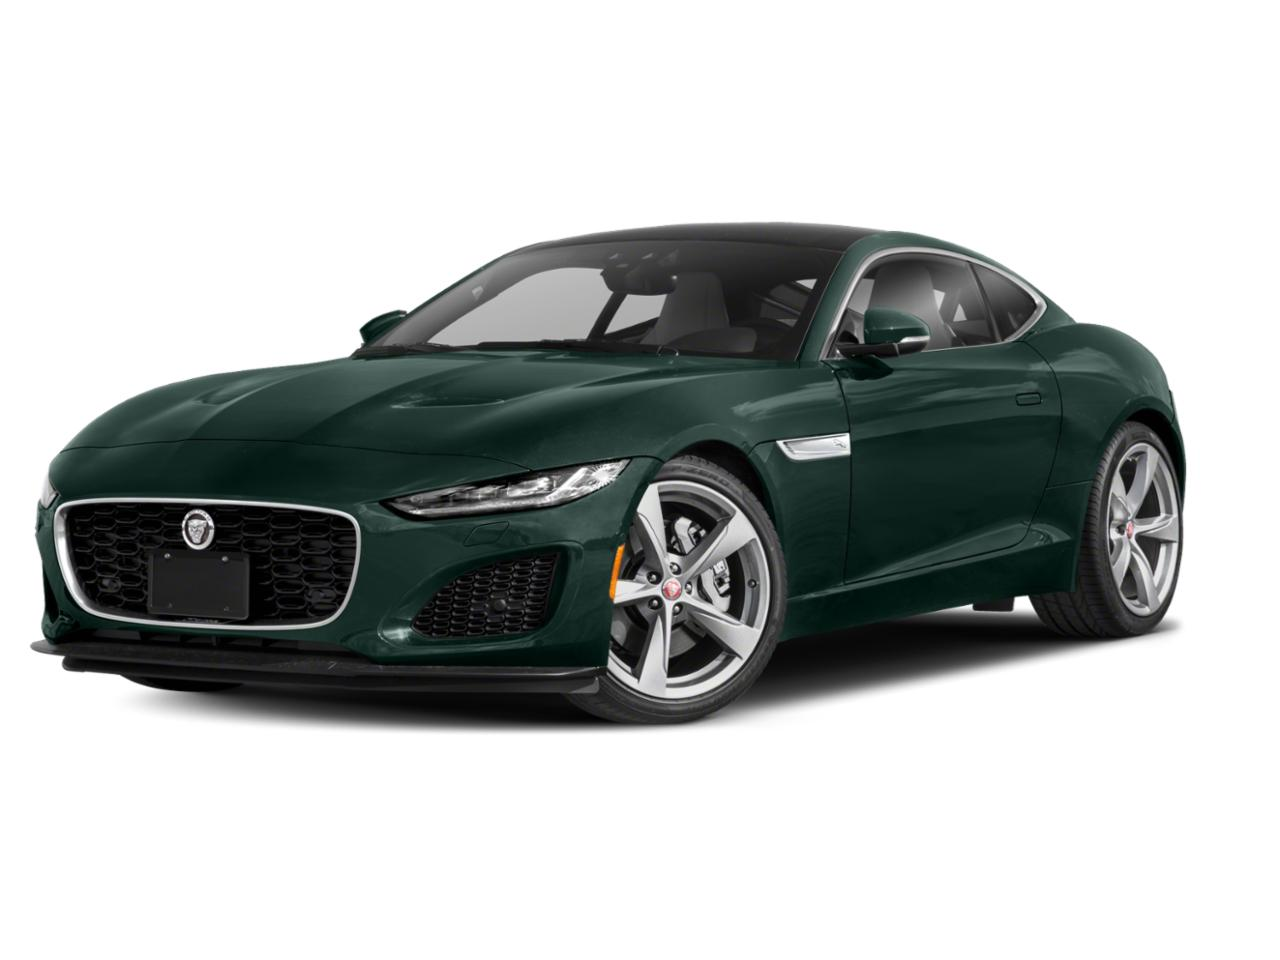 New 2021 Jaguar F-TYPE Indus Silver (With Photos) Coupe ...